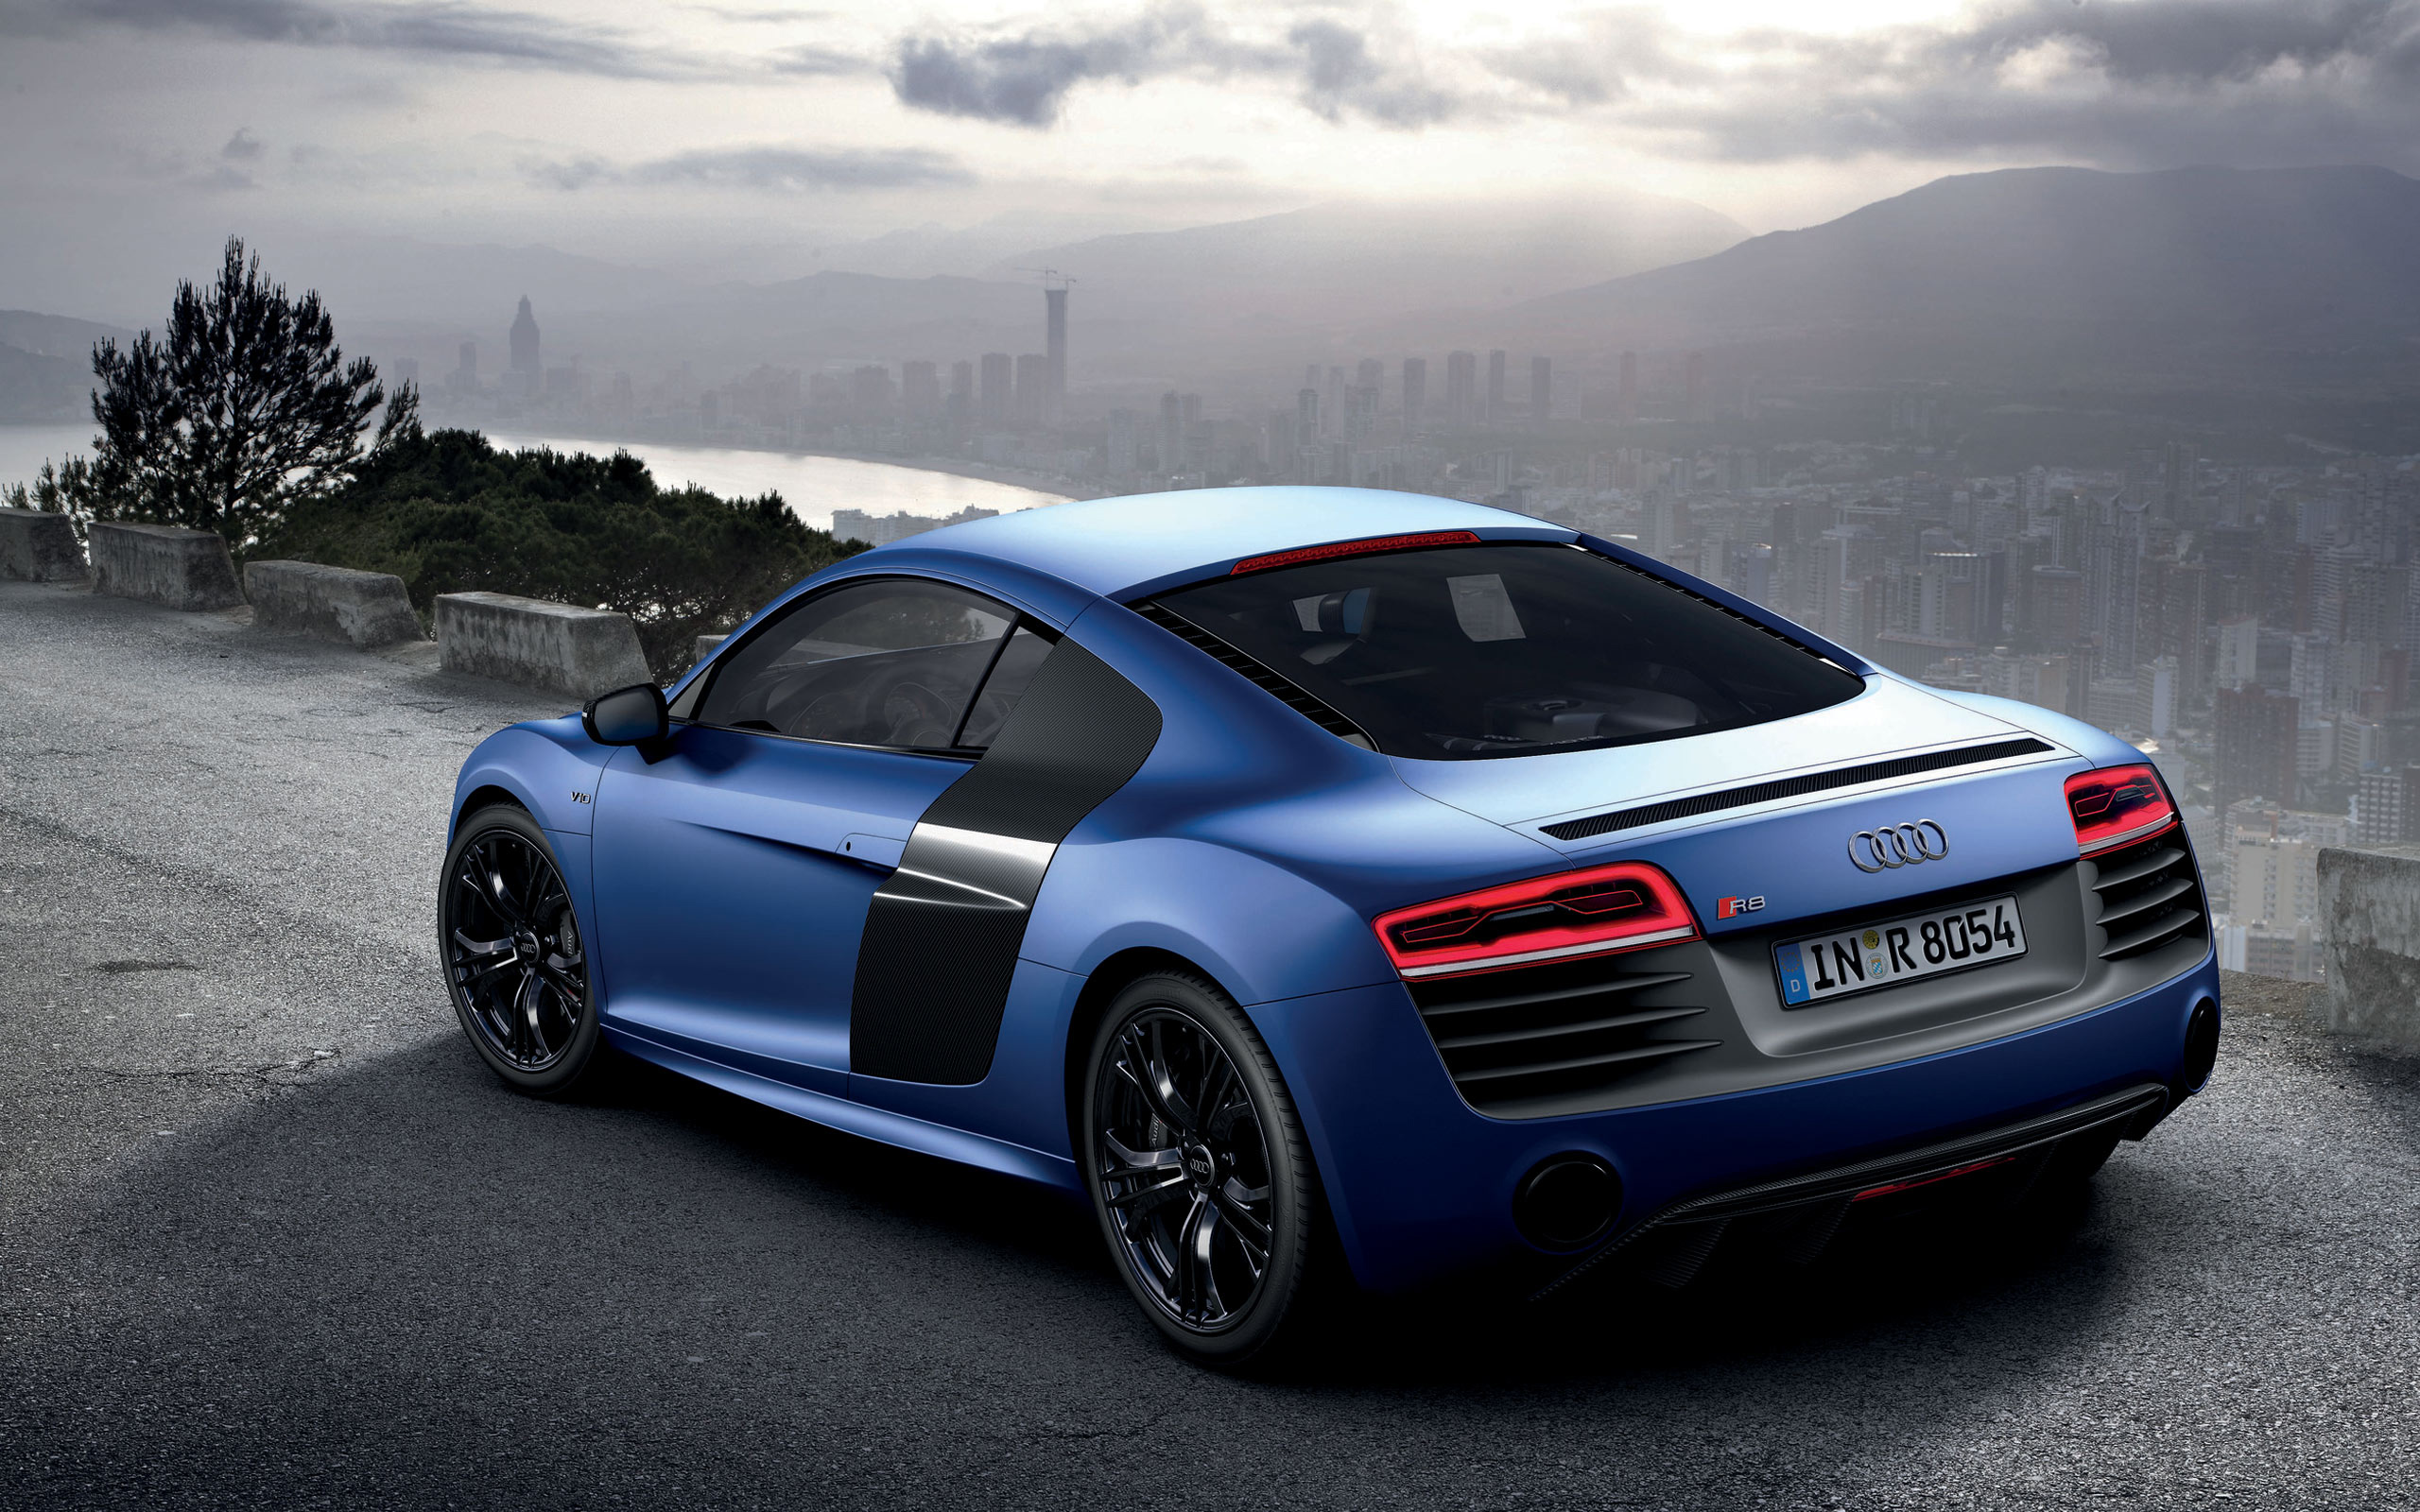 2013 audi r8 v10 plus 2 wallpaper hd car wallpapers id 3054. Black Bedroom Furniture Sets. Home Design Ideas